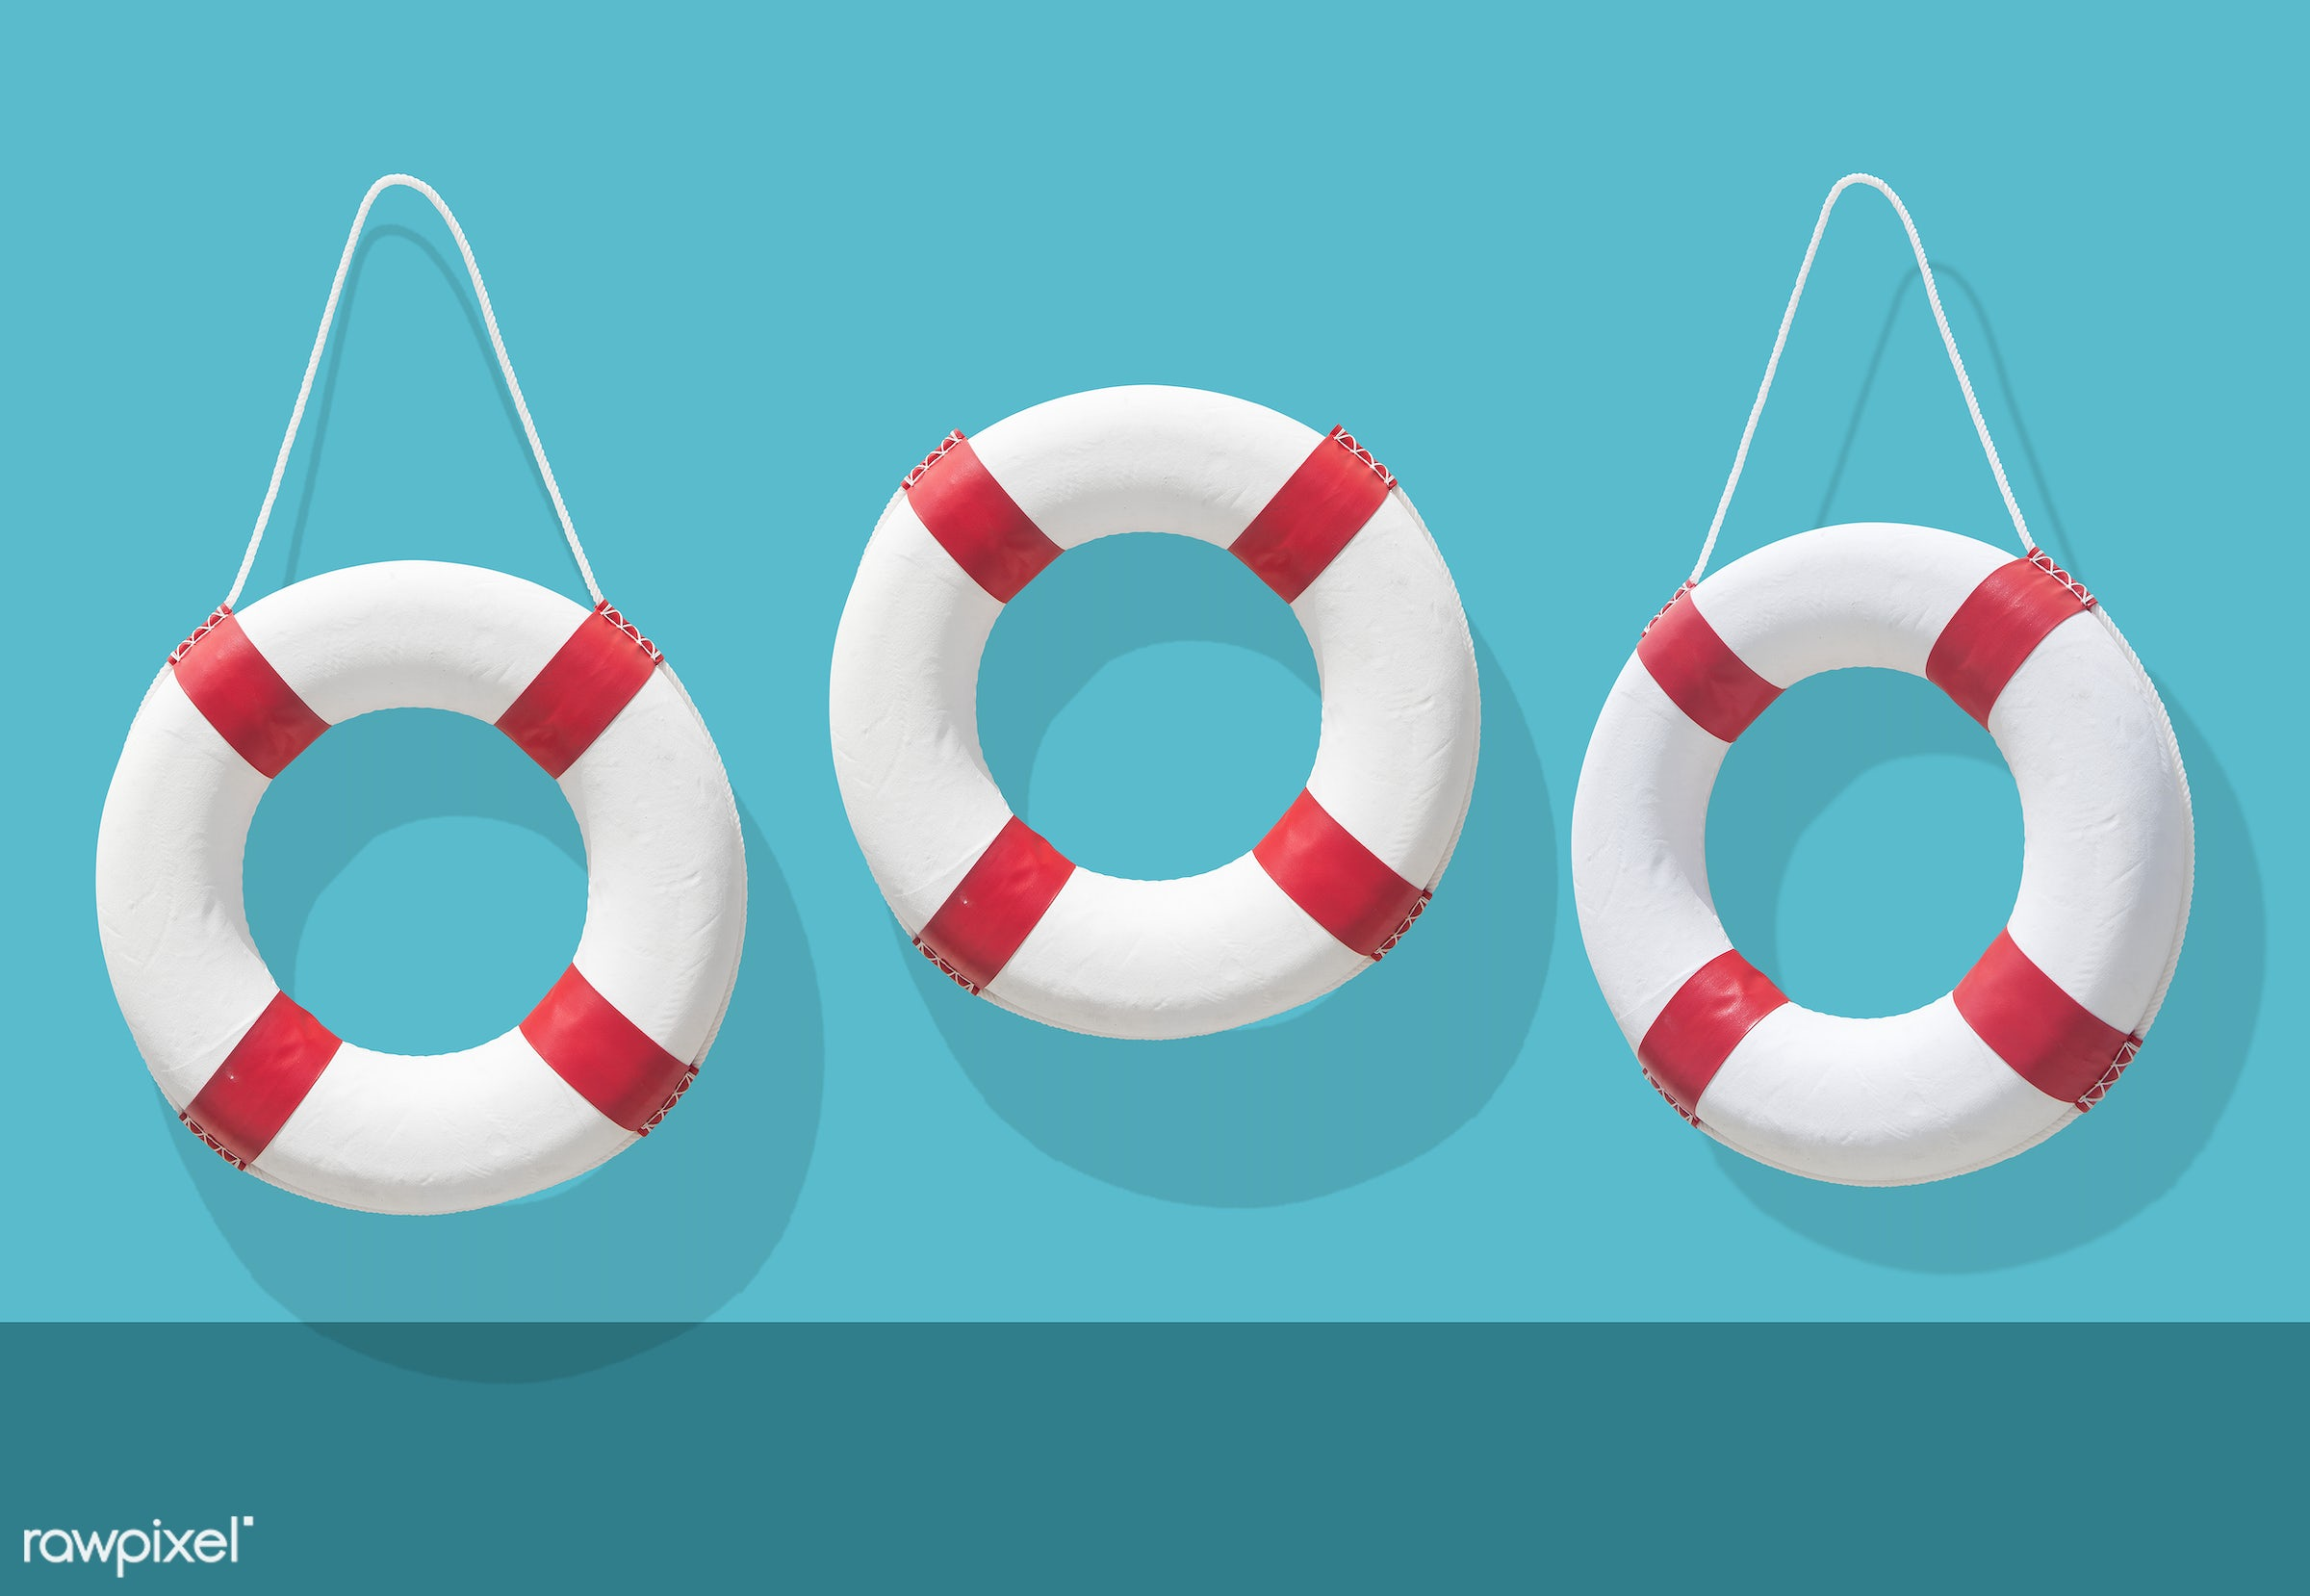 Life buoys on blue background illustration - safety, circle, emergency, float, life buoy, lifebelt, lifeguard, lifesaver,...